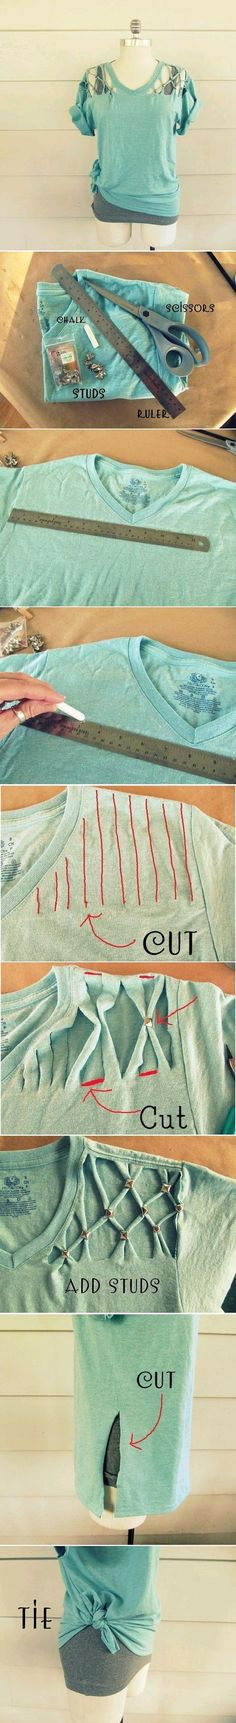 DIY Studded T-Shirt DIY Projects